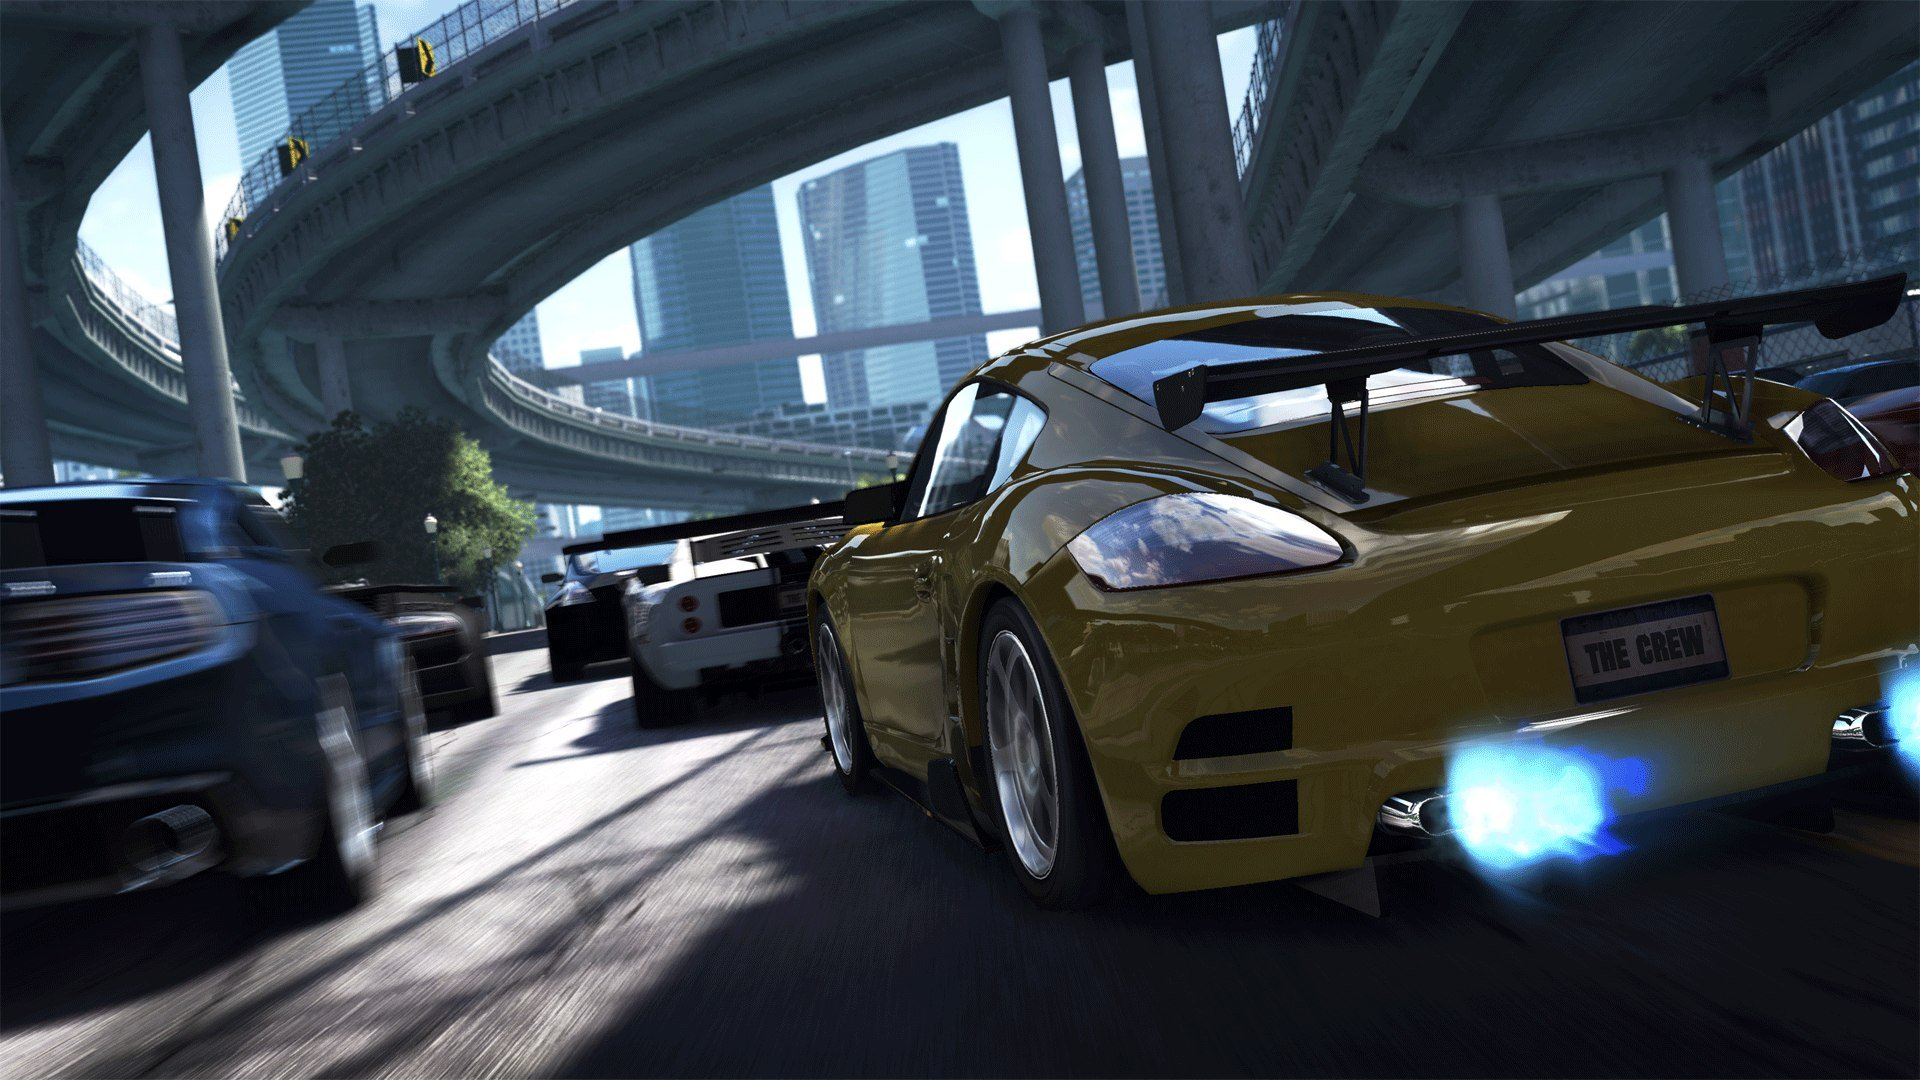 The Crew Open Beta Coming to PS4 & XBox One